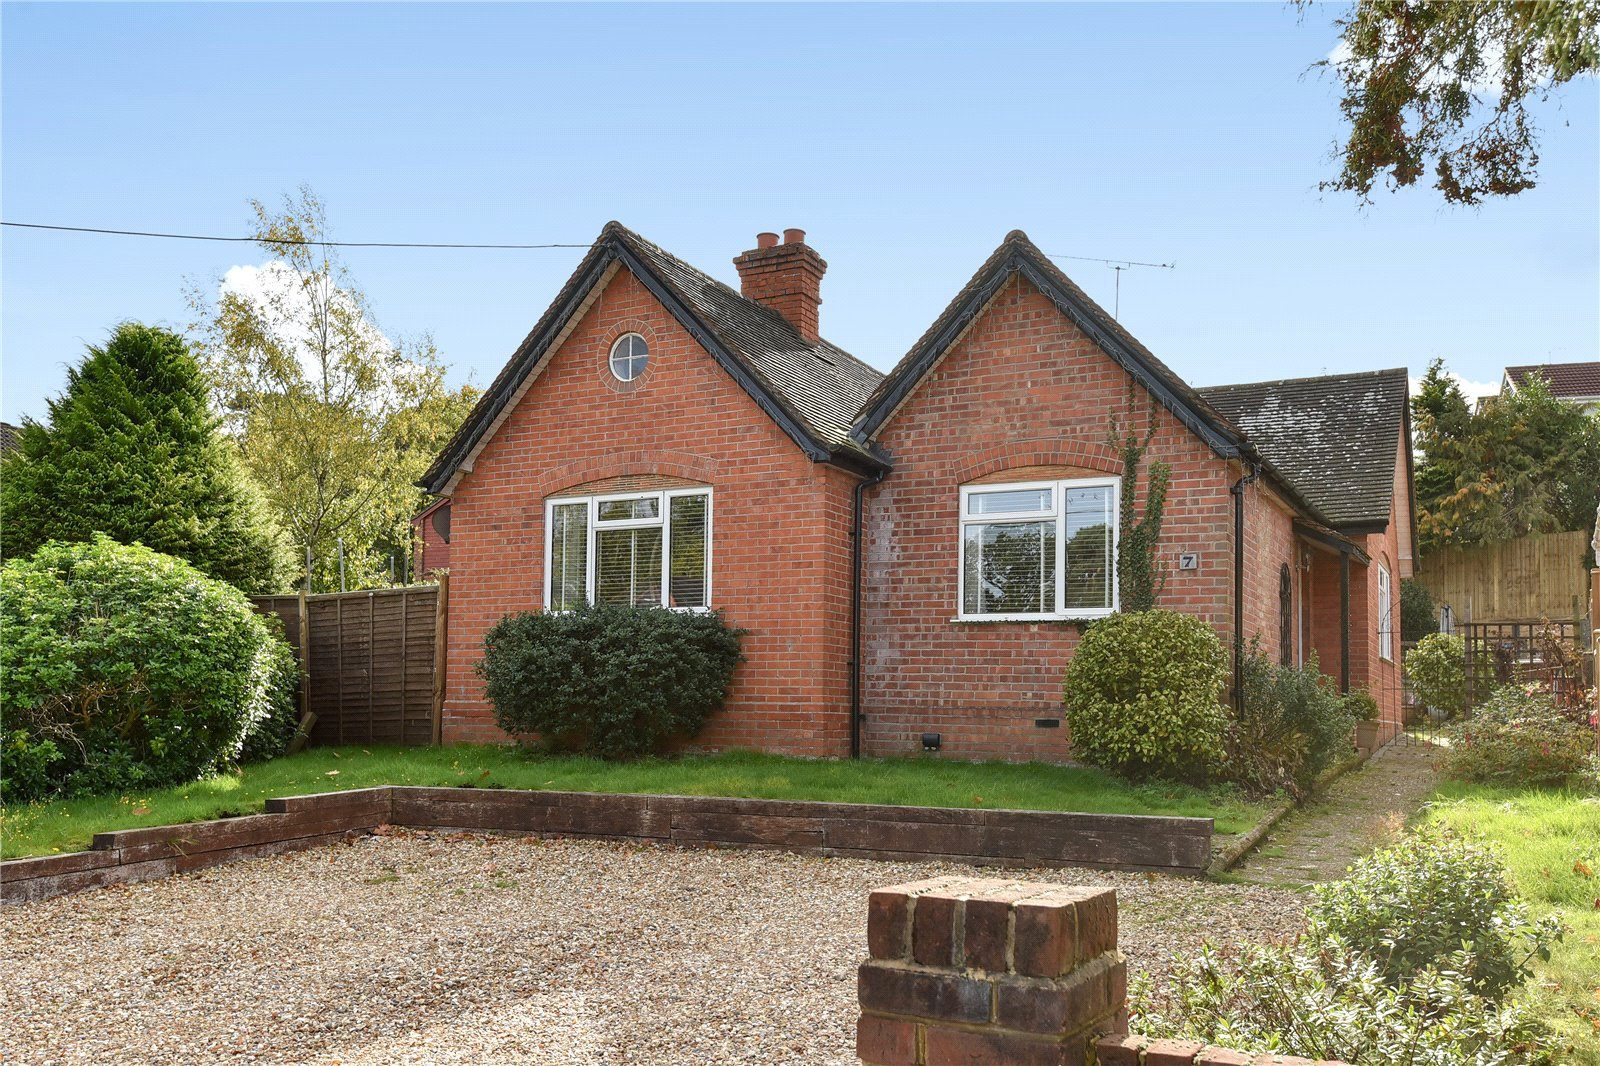 3 Bedrooms Detached Bungalow for sale in Longdown Road, Sandhurst, Berkshire, GU47